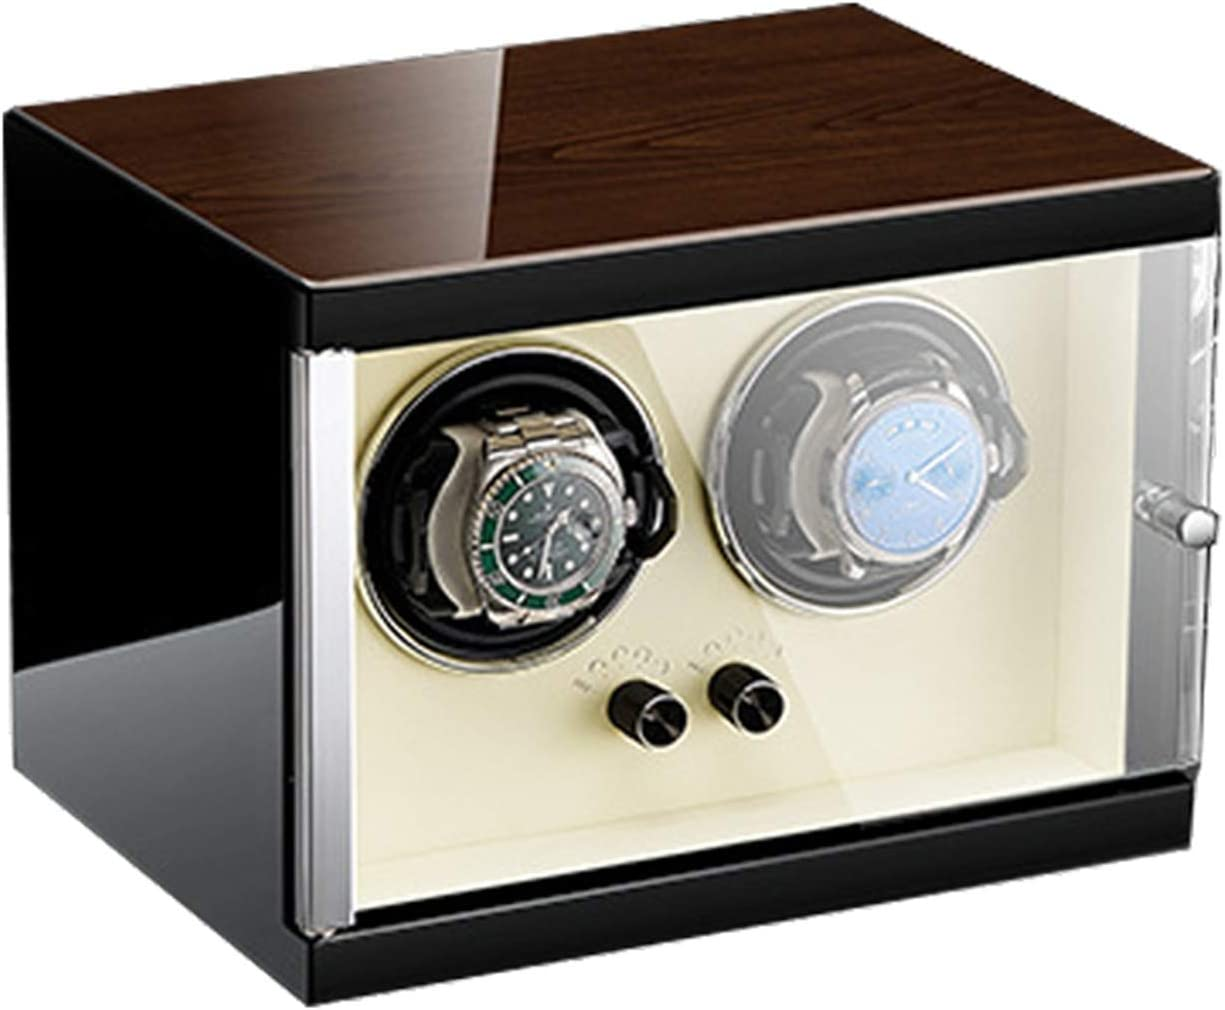 ZCXBHD Dedication Double Automatic Watch Winder Frame Silen Max 90% OFF Extremely Metal